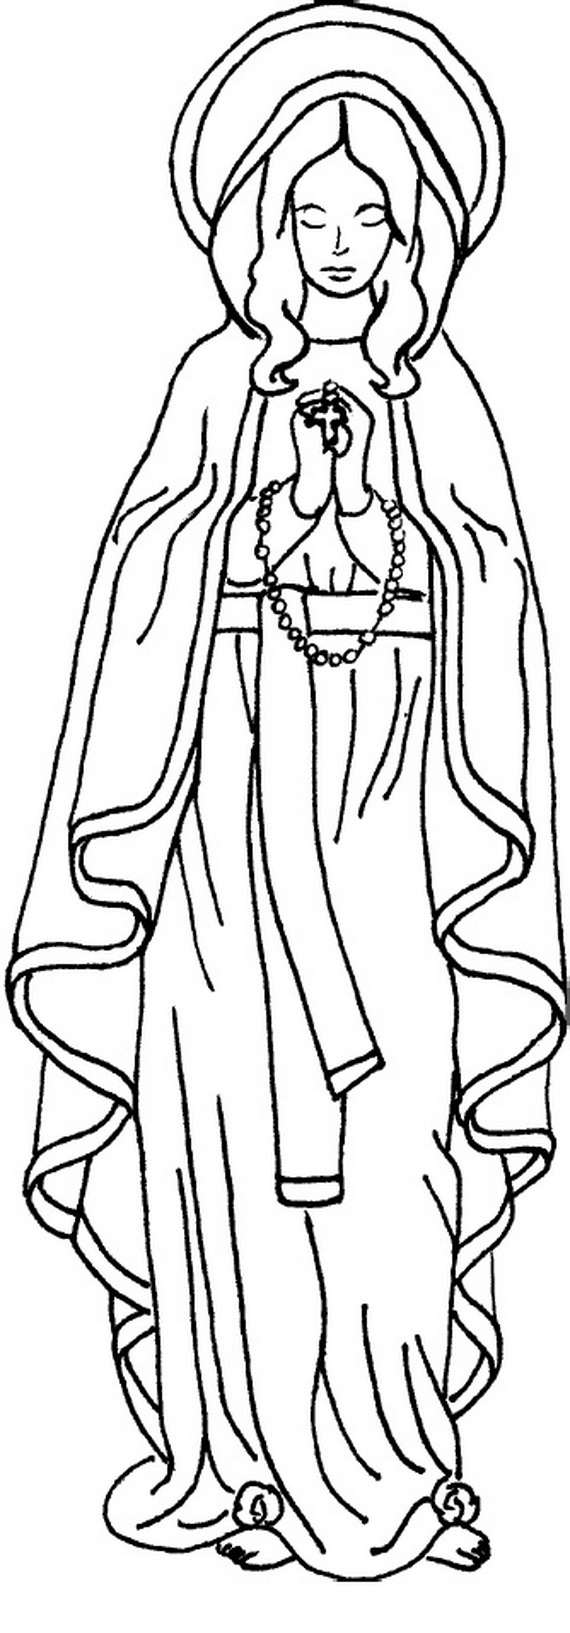 Immaculate Conception Coloring Pages